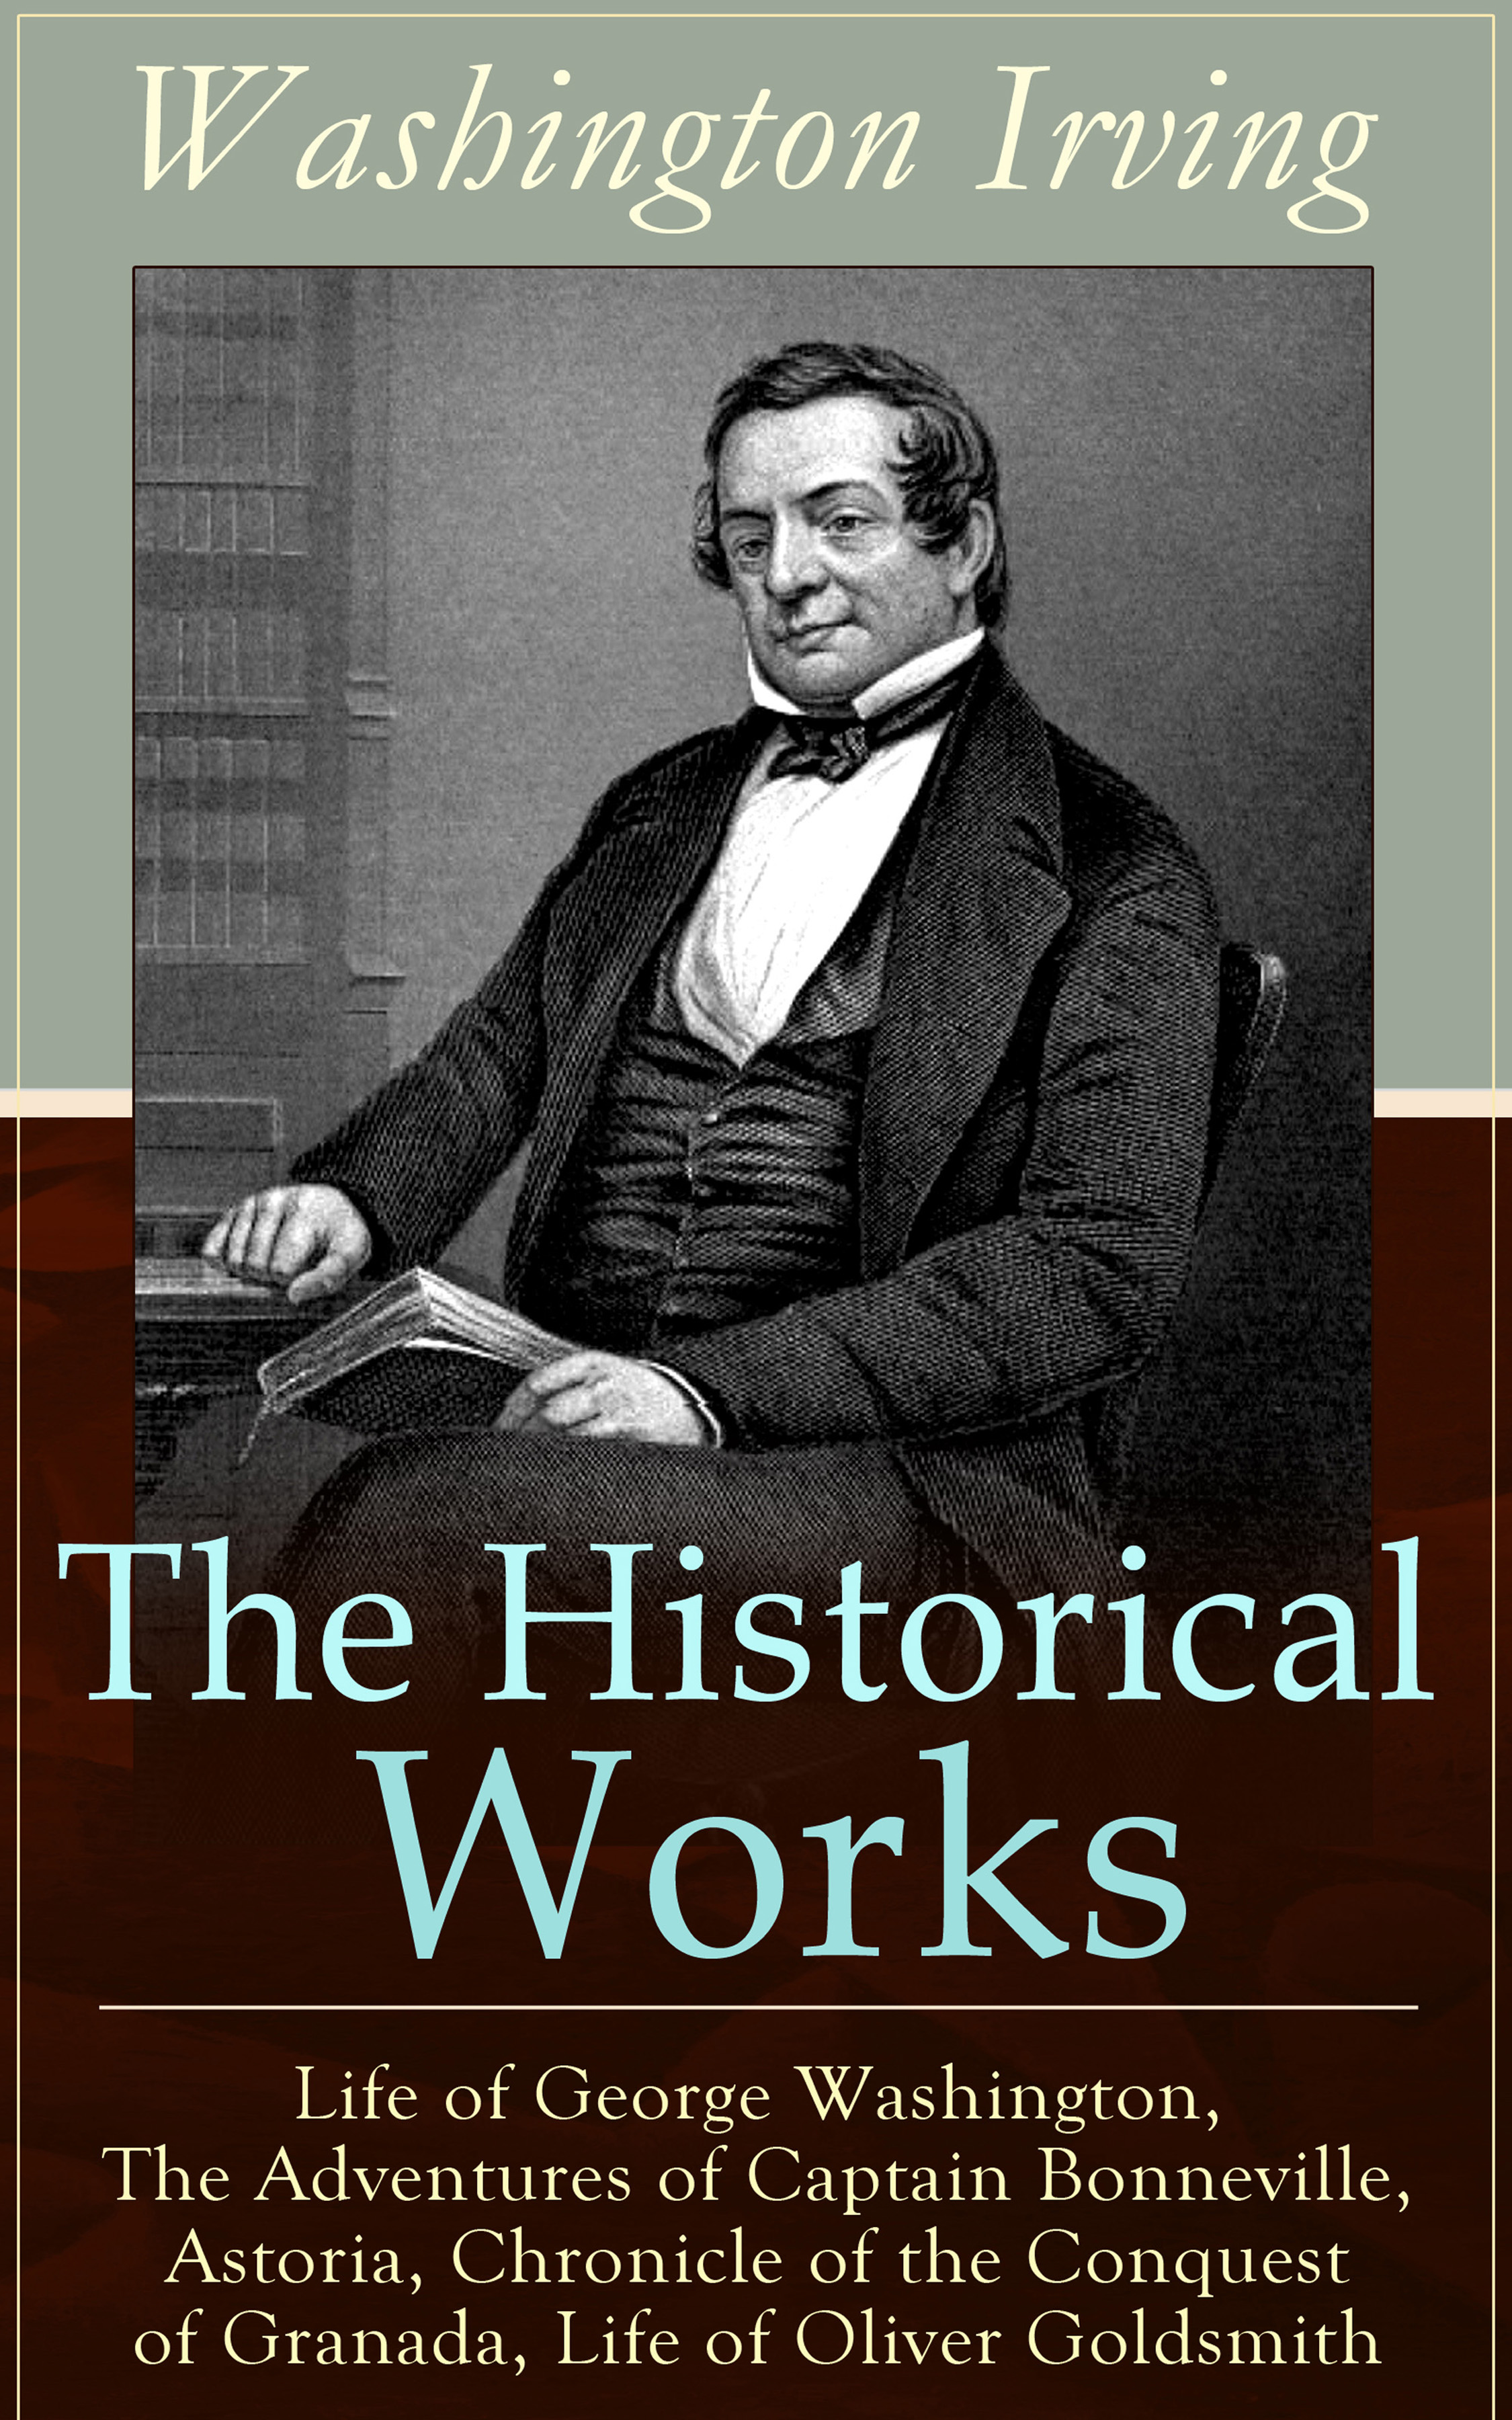 Вашингтон Ирвинг The Historical Works of Washington Irving: Life of George Washington, The Adventures of Captain Bonneville, Astoria, Chronicle of the Conquest of Granada, Life of Oliver Goldsmith george bull the works of george bull d d lord bishop of st david s 2